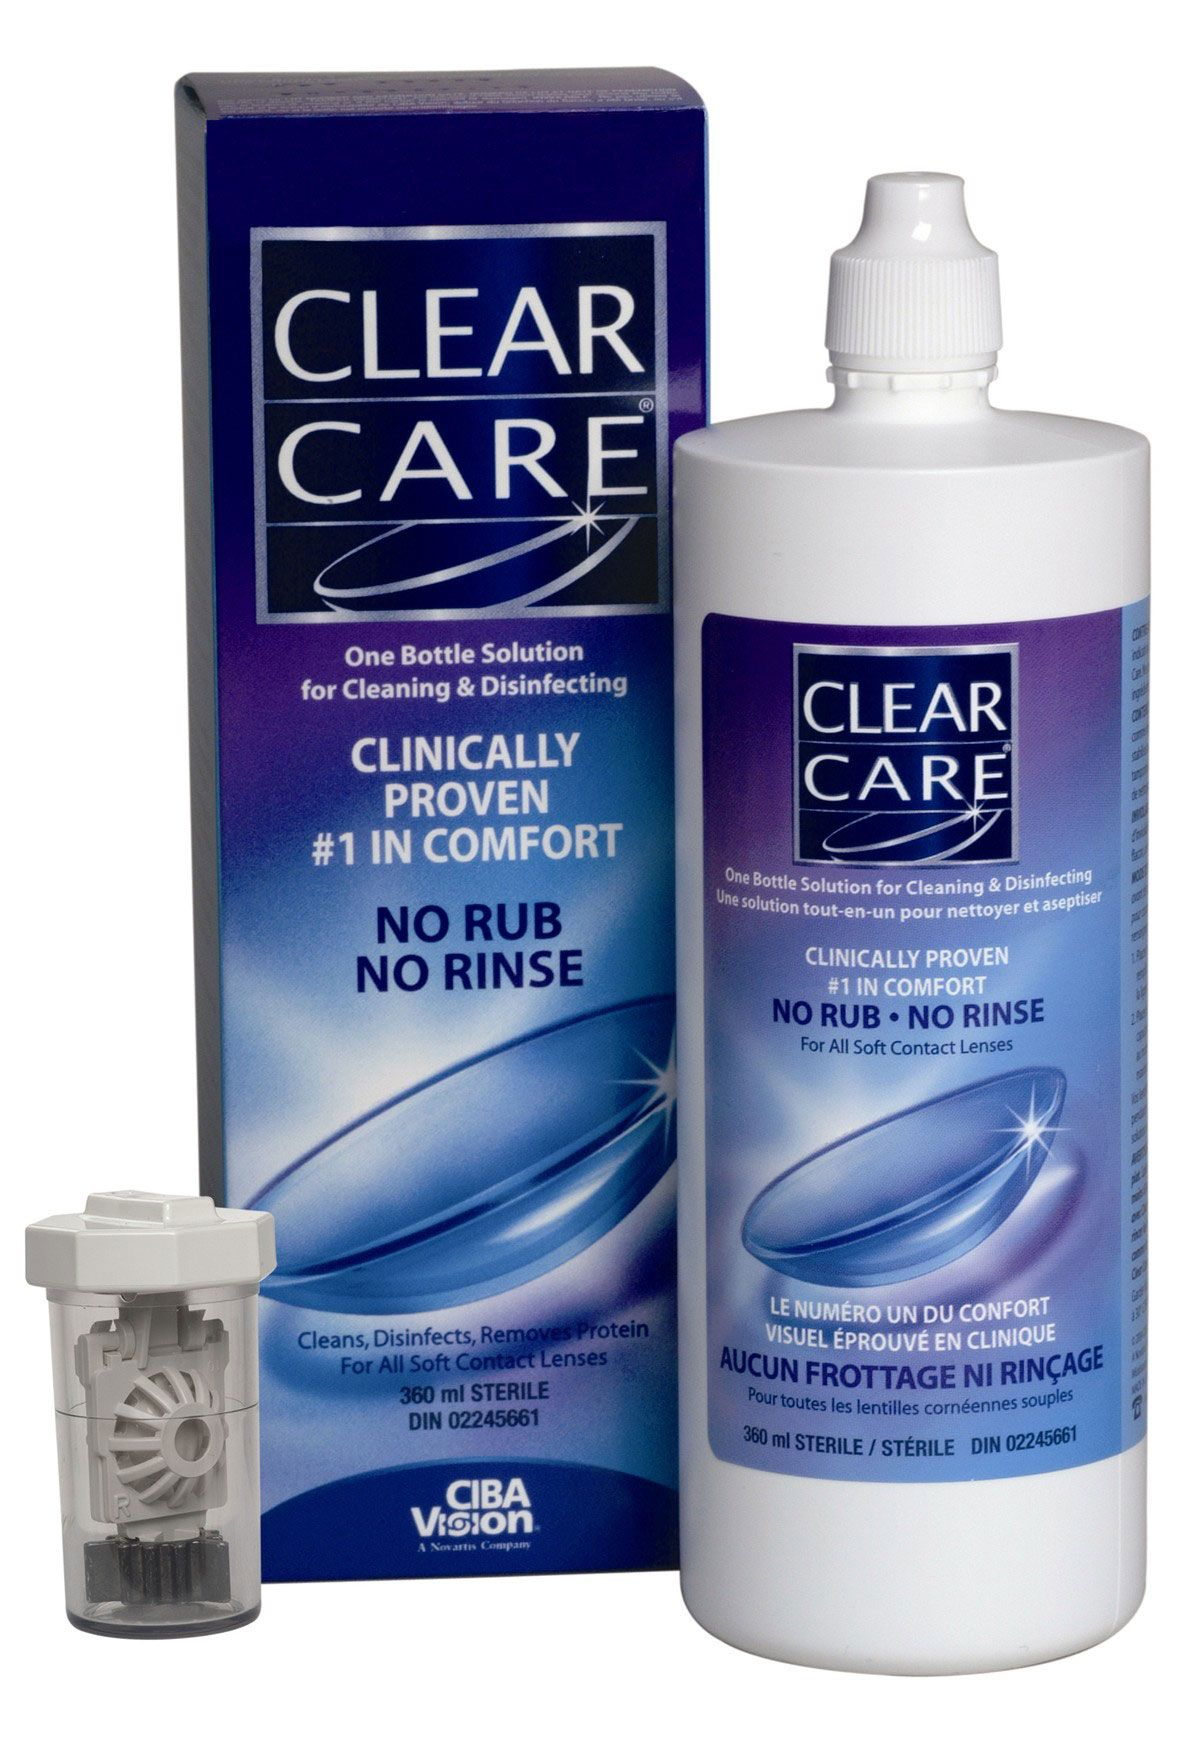 Clearcare The Best Contact Lens Solution With The Strength Of Hydrogen Peroxide To Clean Your Contacts With Images Care Best Contact Lenses